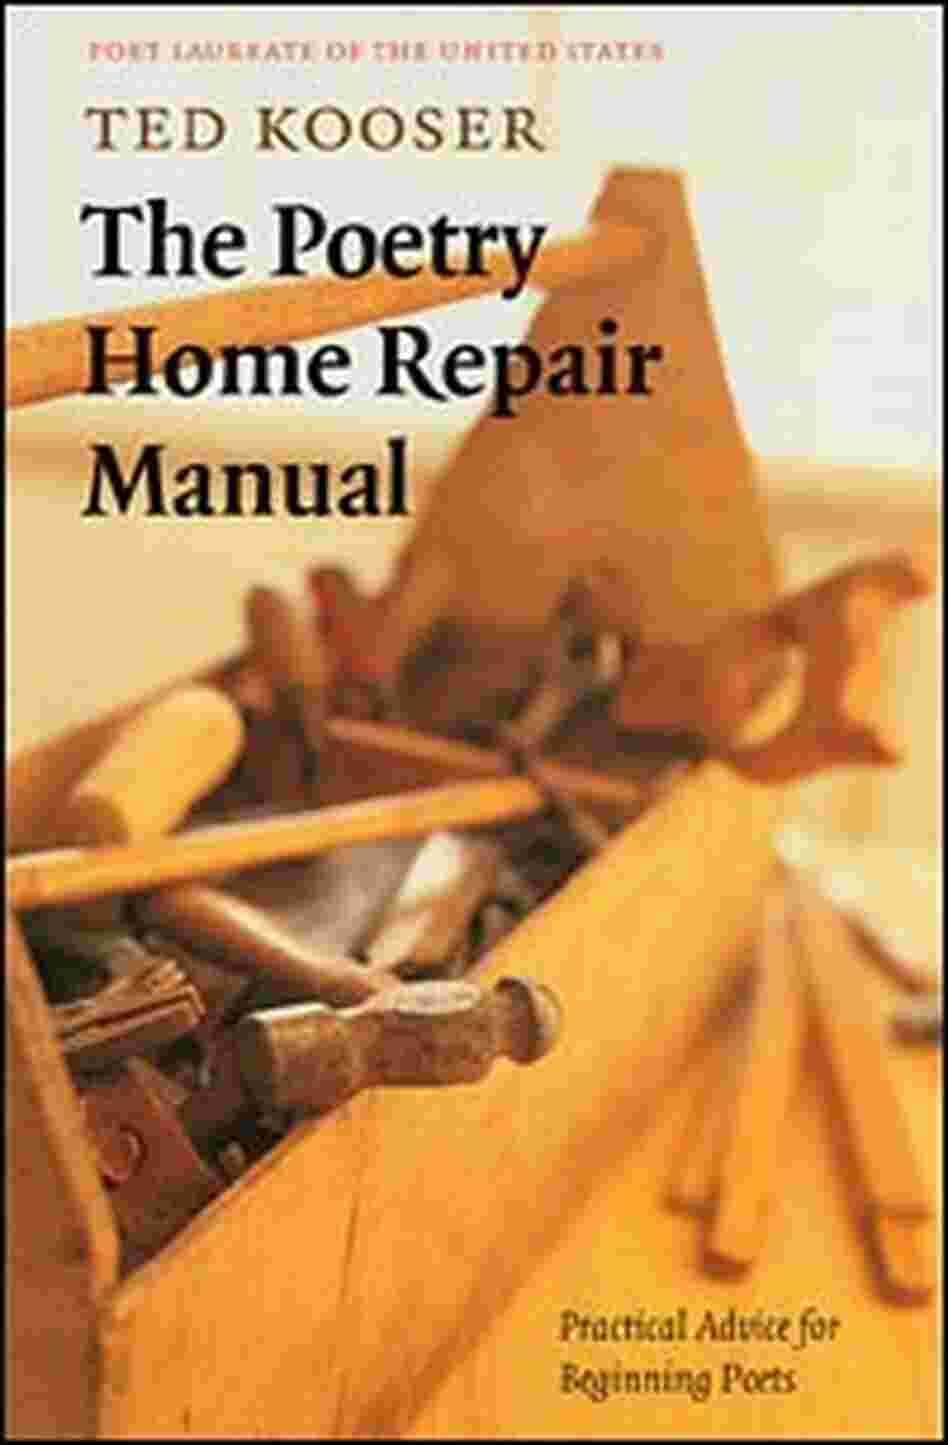 'The Poetry Home Repair Manual' by Ted Kooser